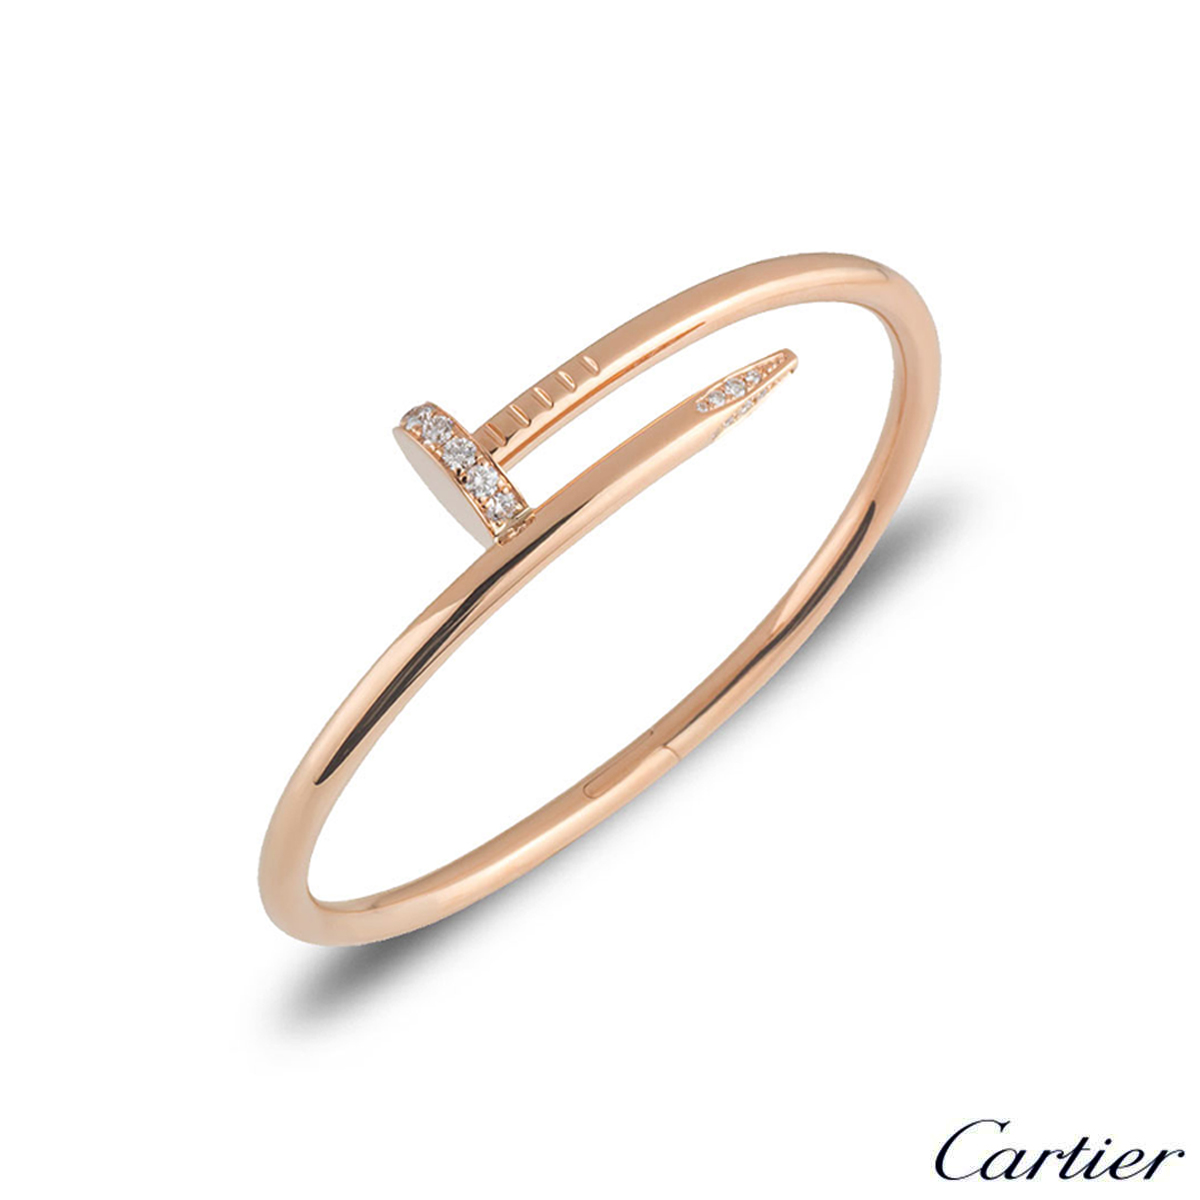 Cartier Rose Gold Diamond Juste Un Clou Bracelet Size 18 B6048518